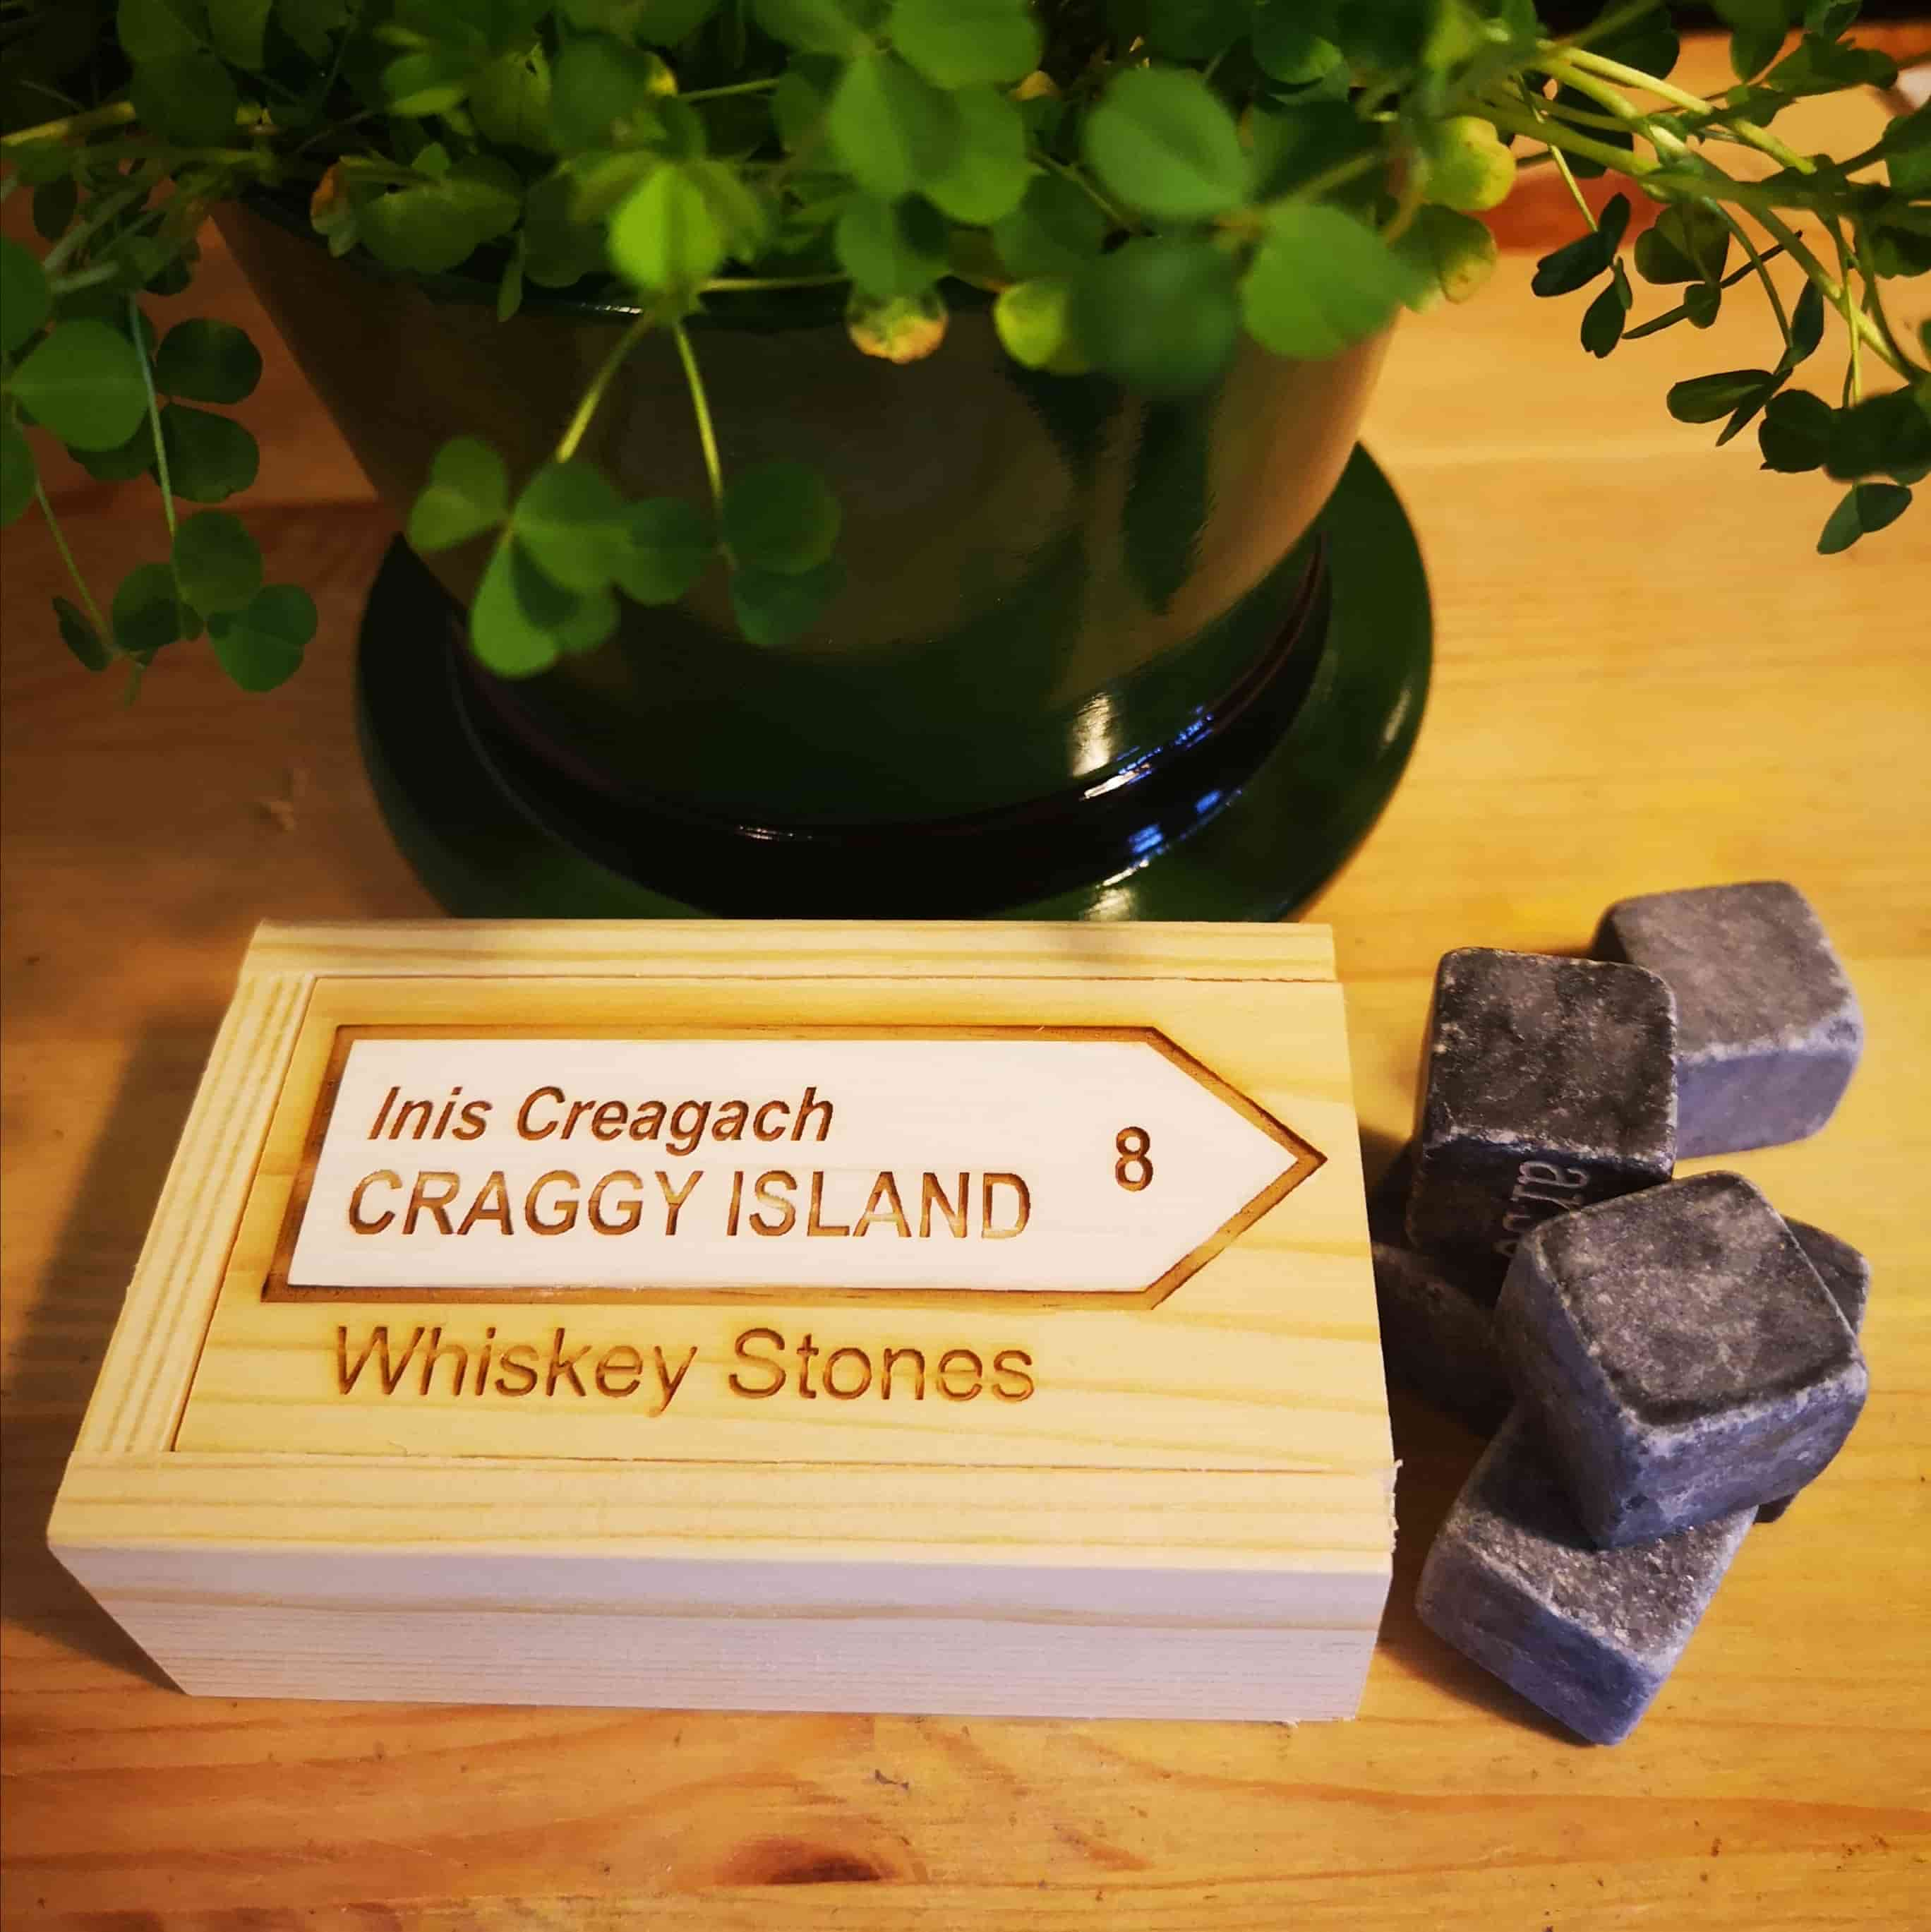 Craggy Island Whiskey Stones